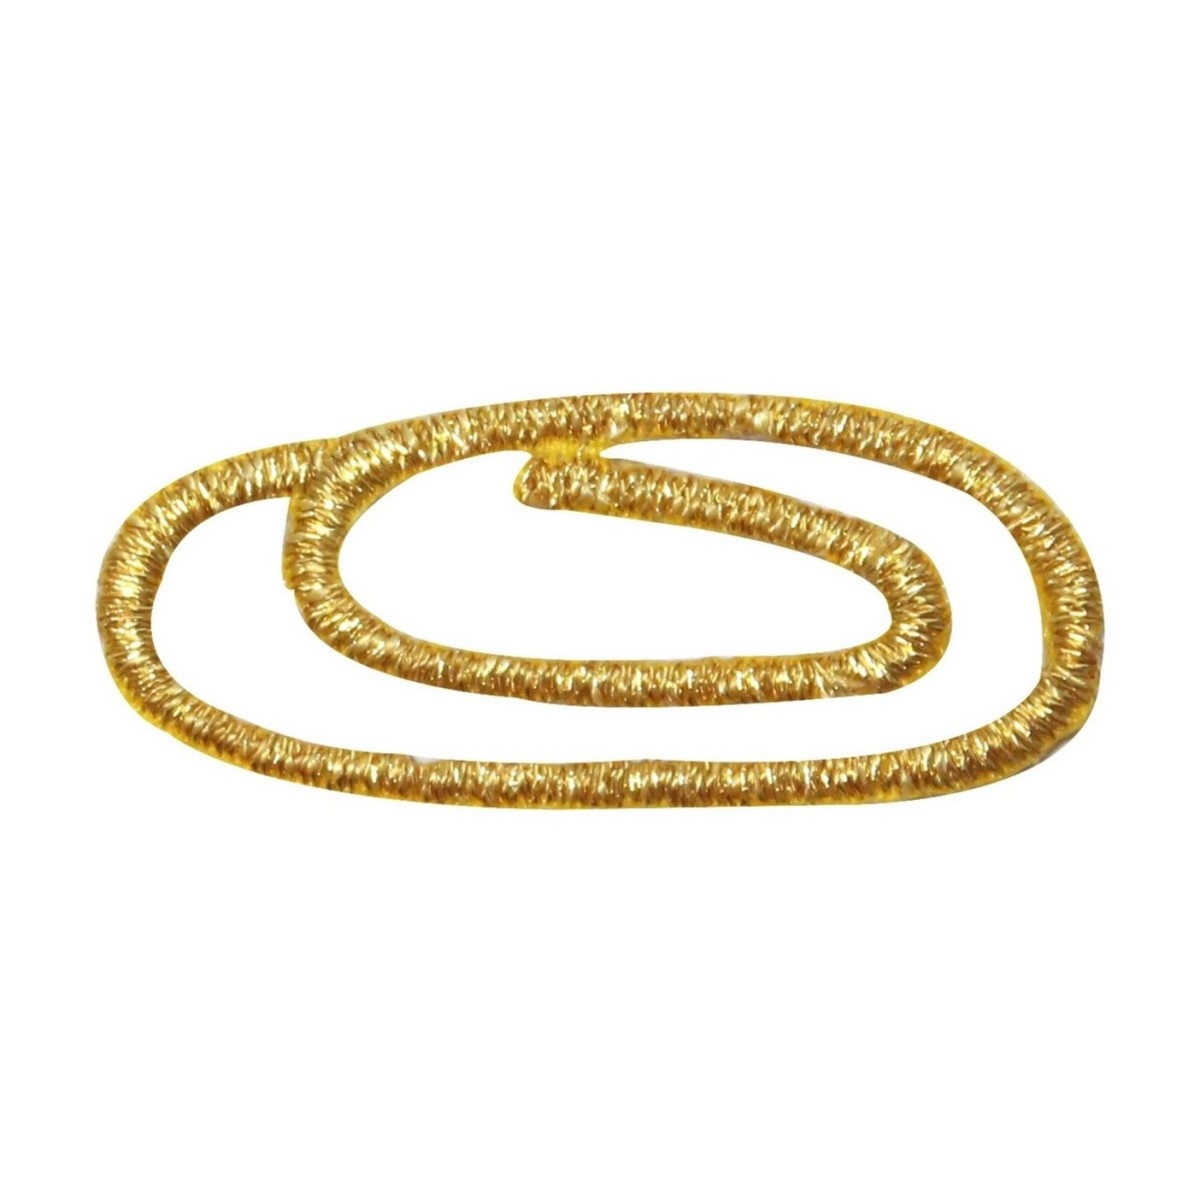 ID 9093 Gold Paper Clip Patch Metal Rope Swirl Hold Embroidered Iron On Applique